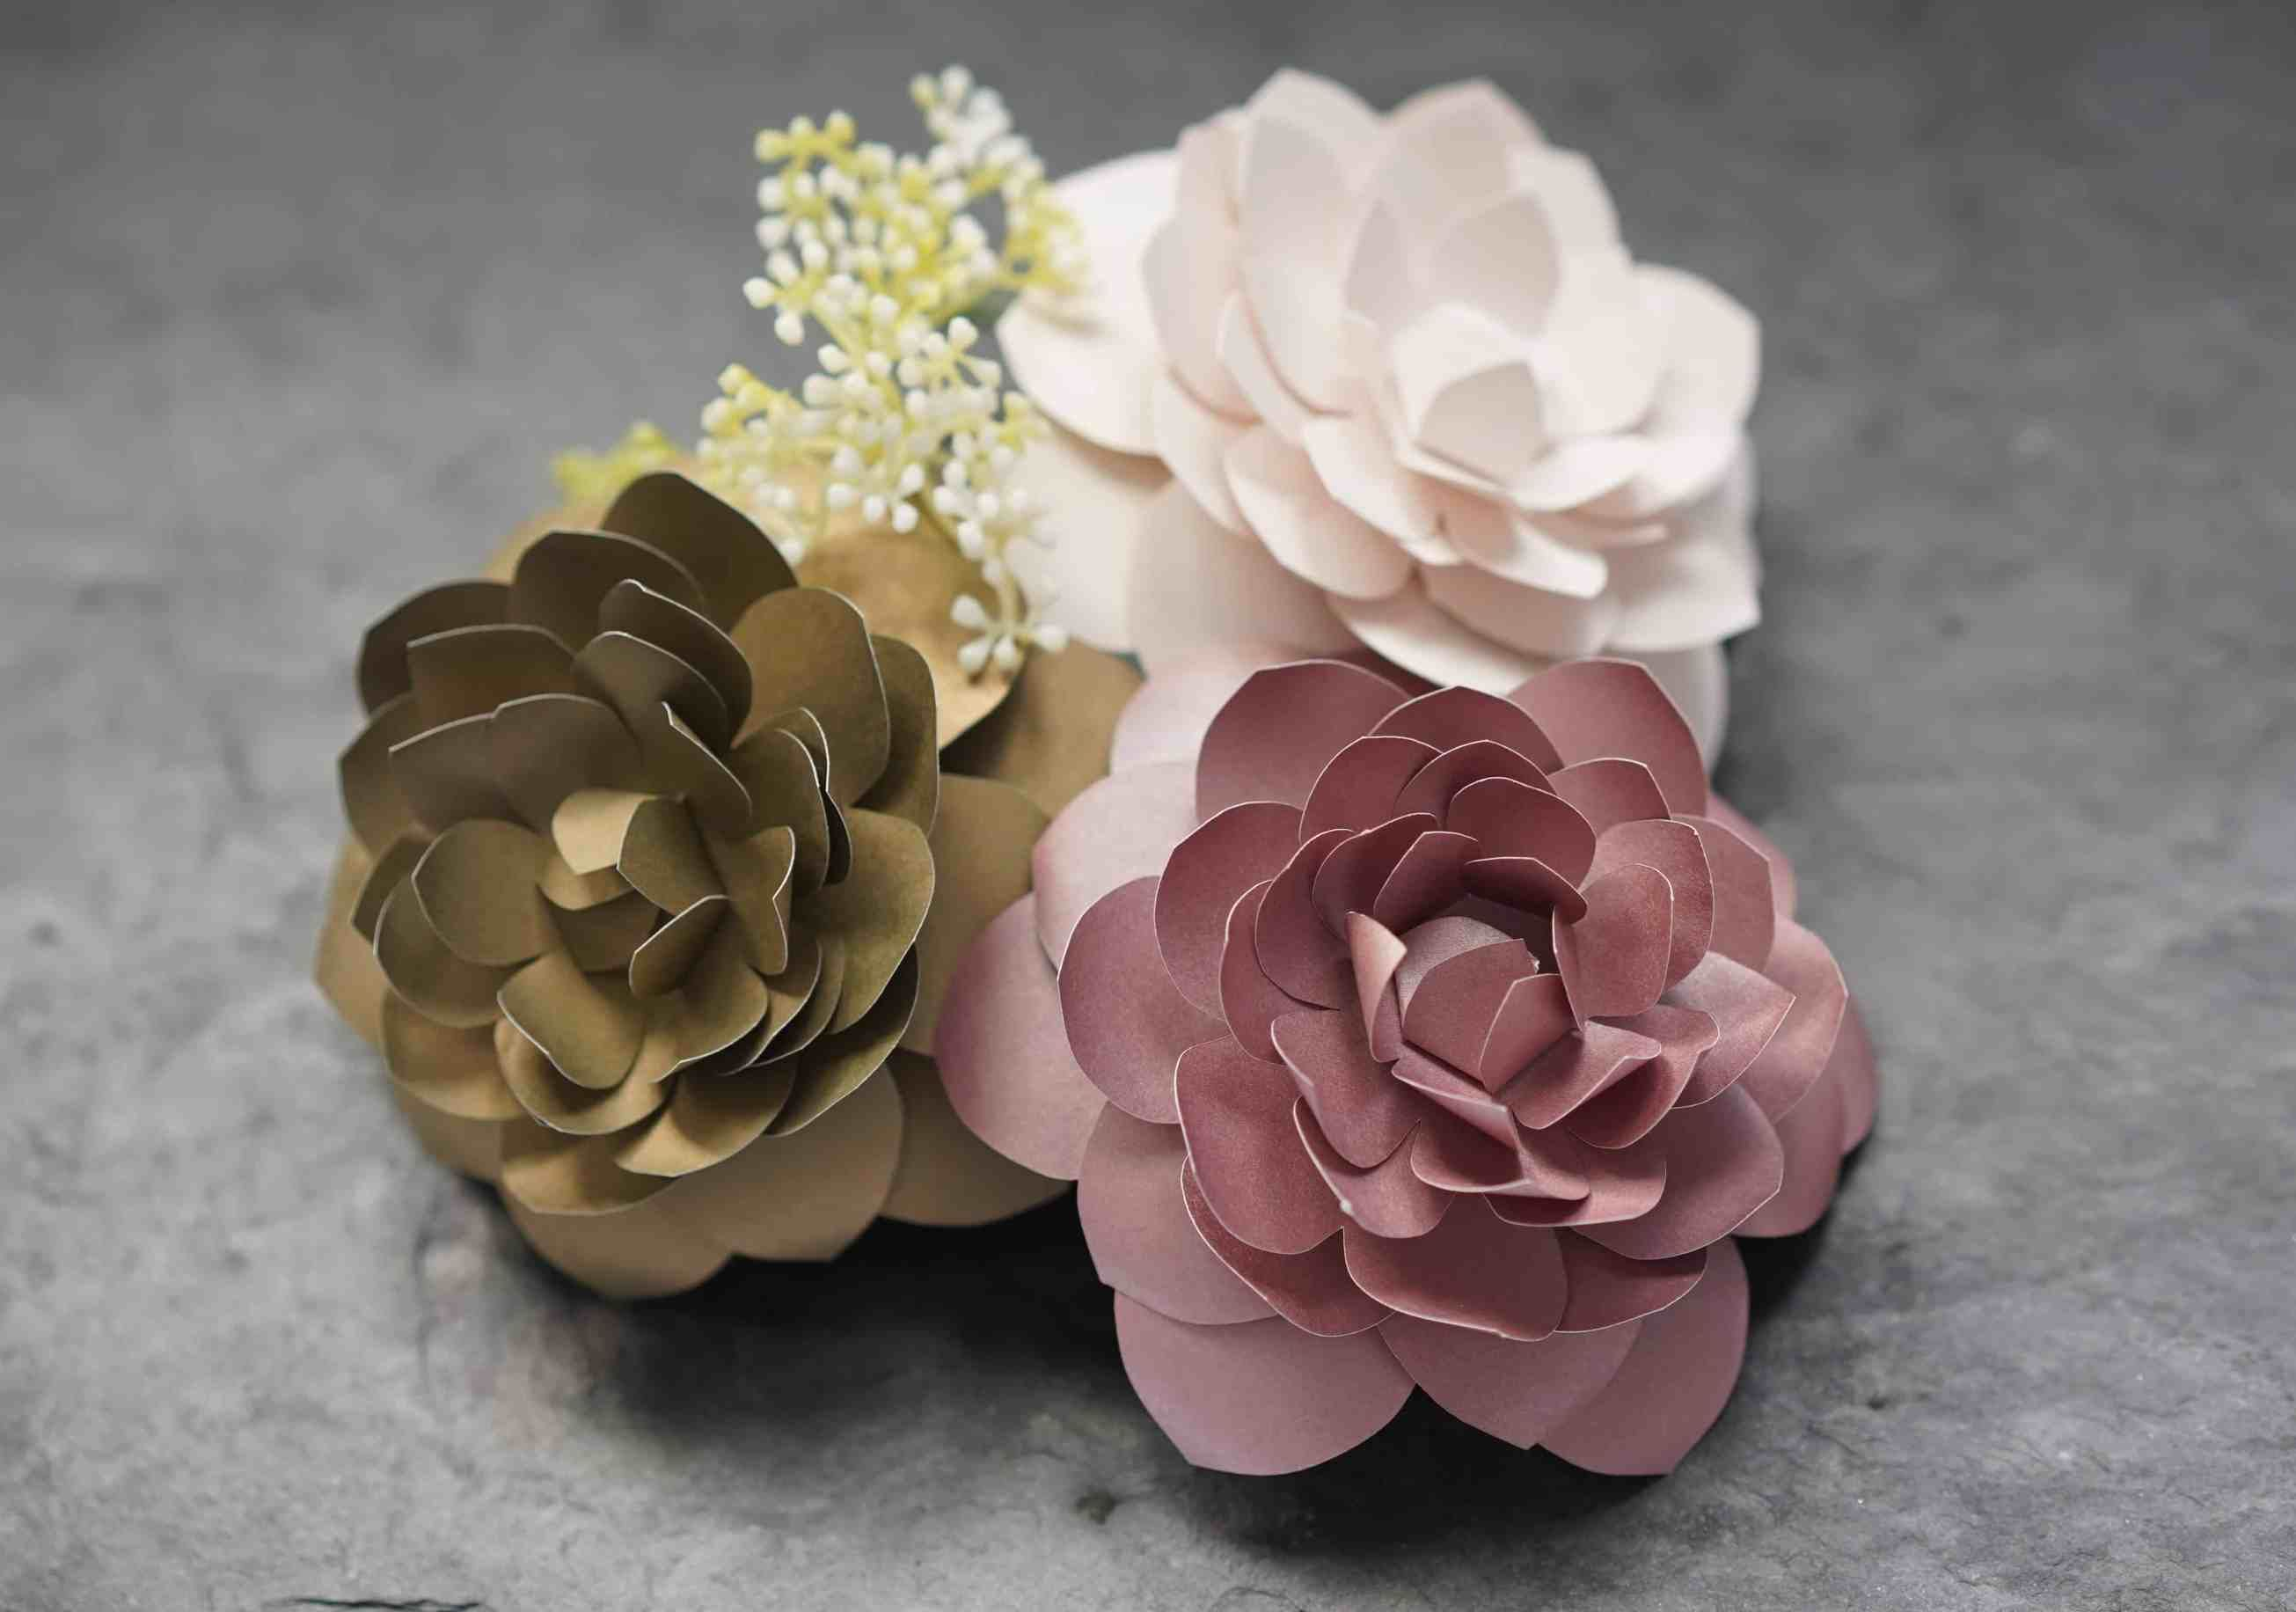 Diy Paper Camellia With Free Flower Template Flower Template Rolled Paper Flowers Paper Flowers